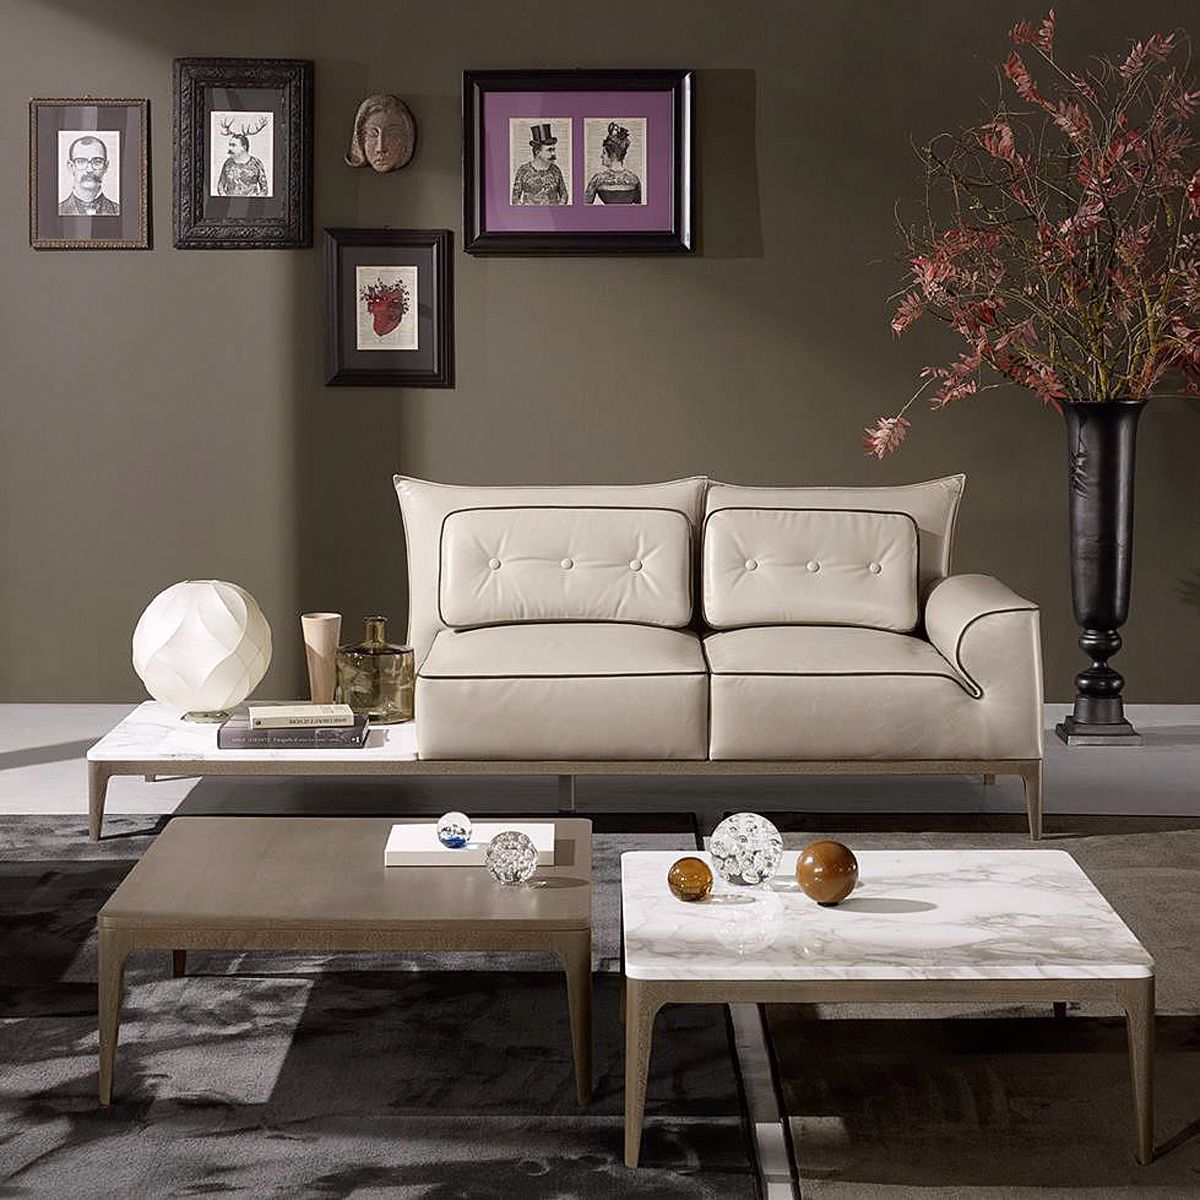 Polaris Designed For Living Srl mivida sofa and coffee table collection _design by angelo